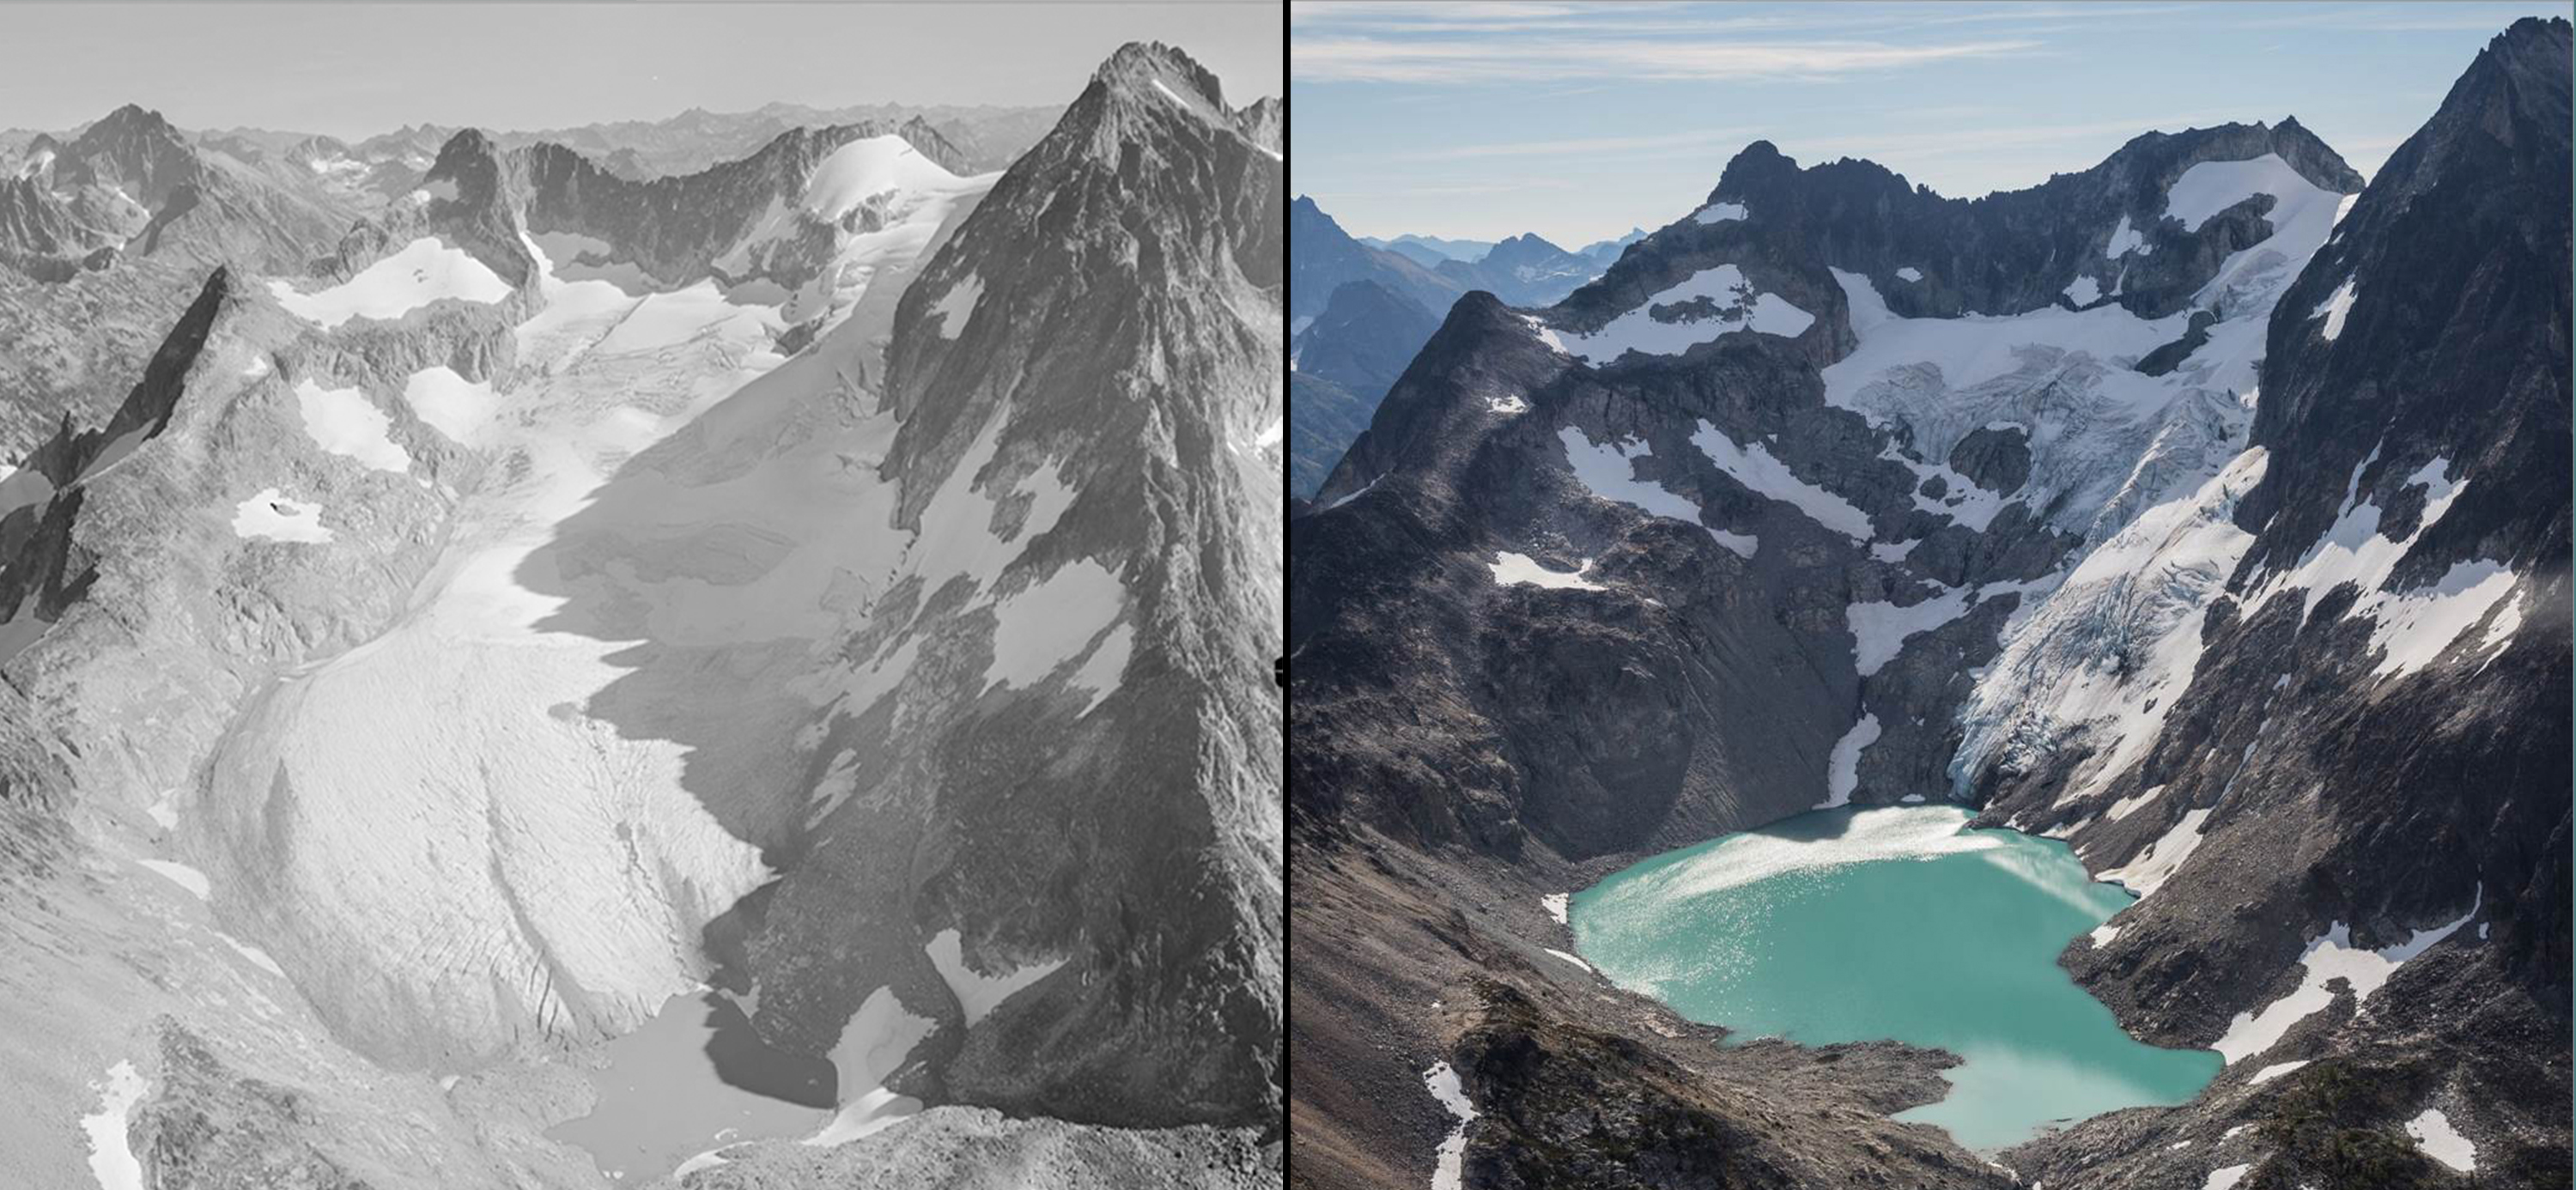 before and after photos of glacier.